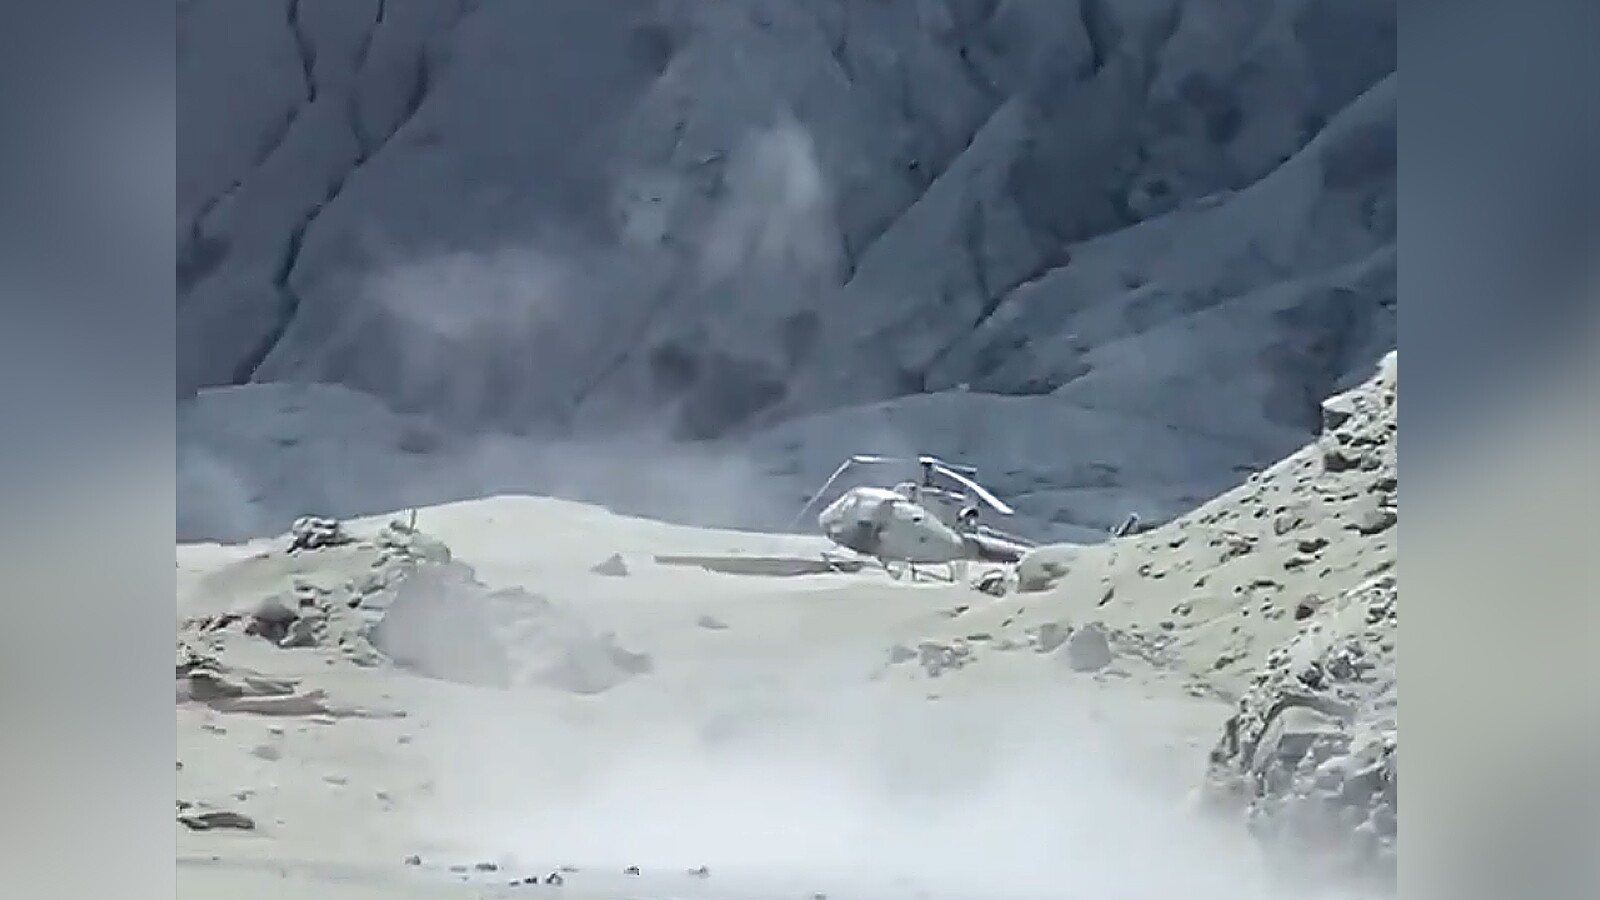 Photos: Seventeenth person dies from New Zealand's White Island eruption